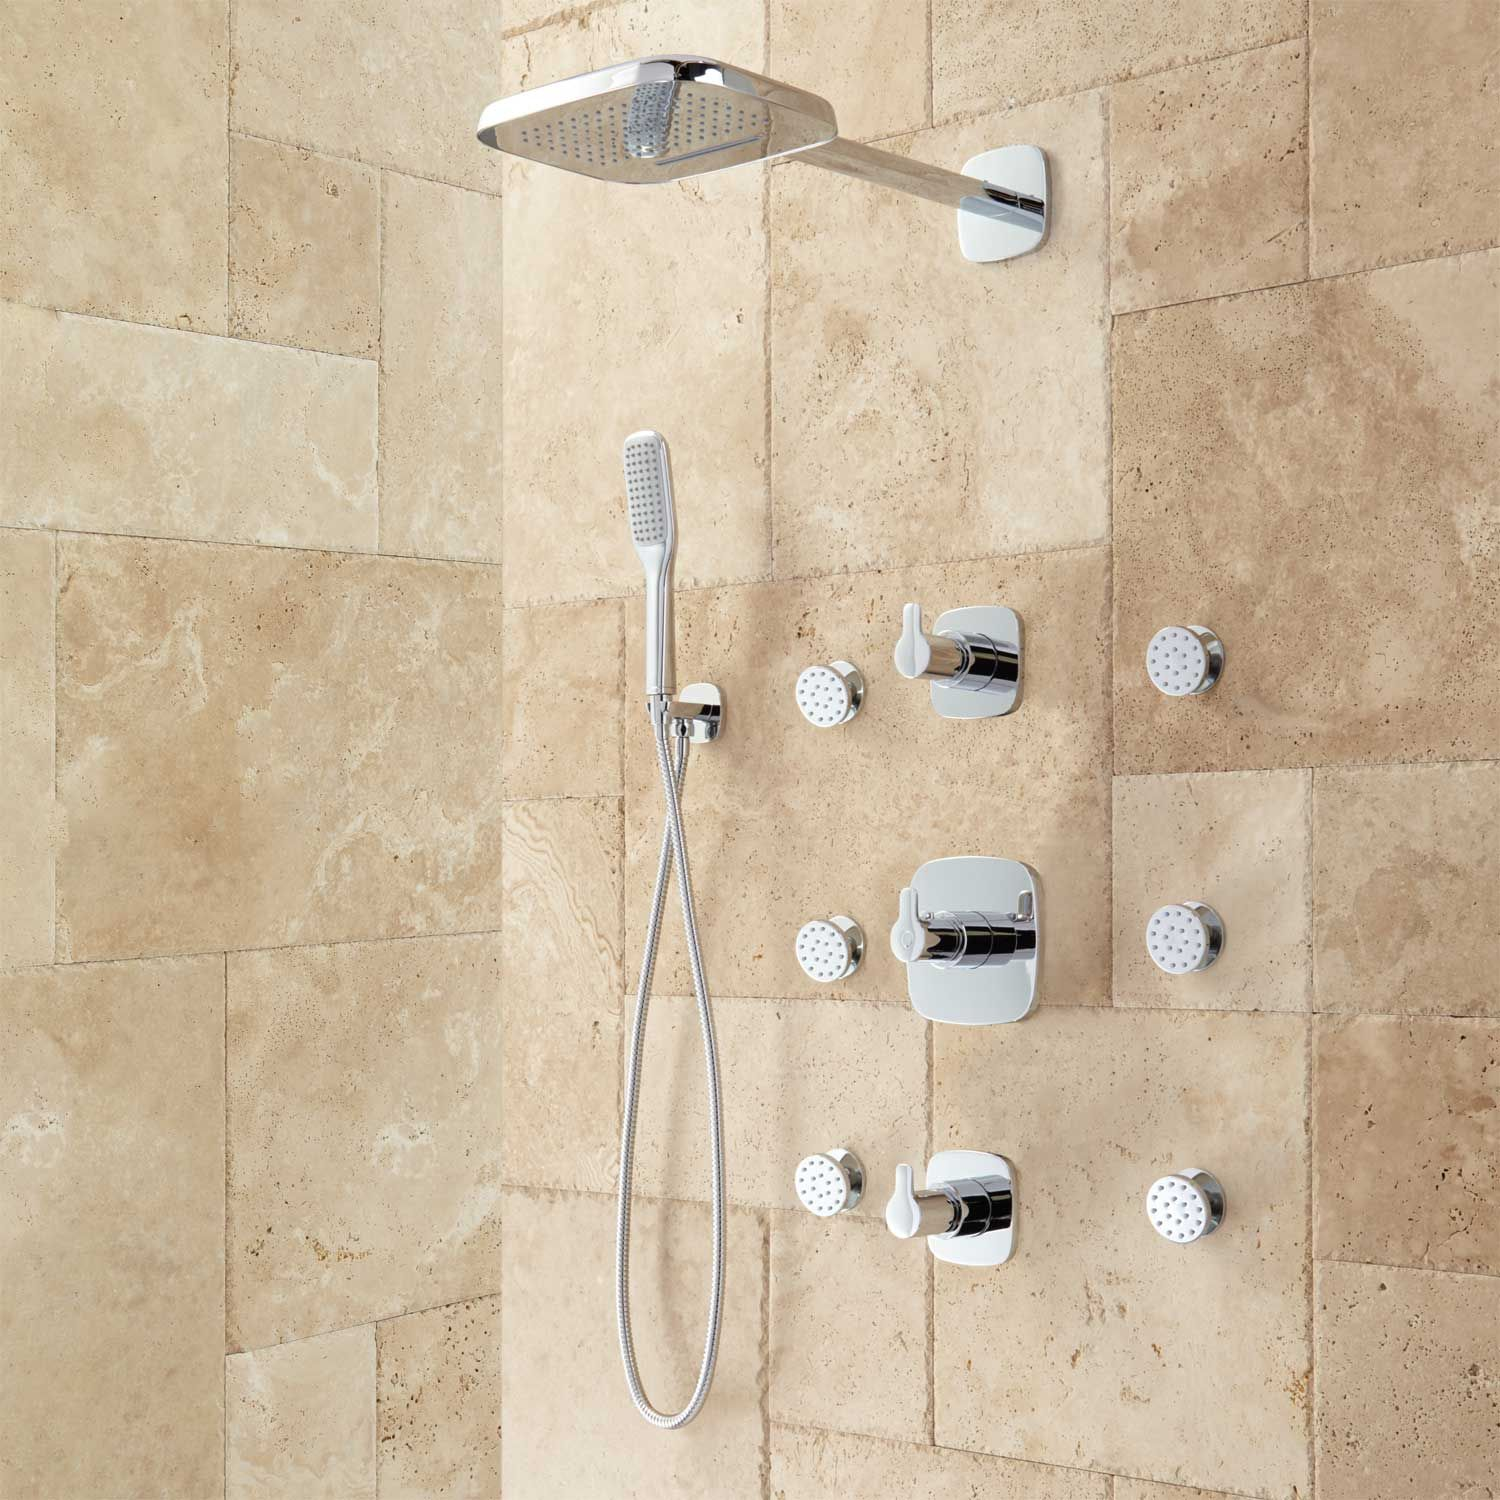 with j dallas systems rhrememberingnevernet for handheld ndcdrhndcdorg bathroom delta sale bathselectrhbathselectcom tx shower elegant